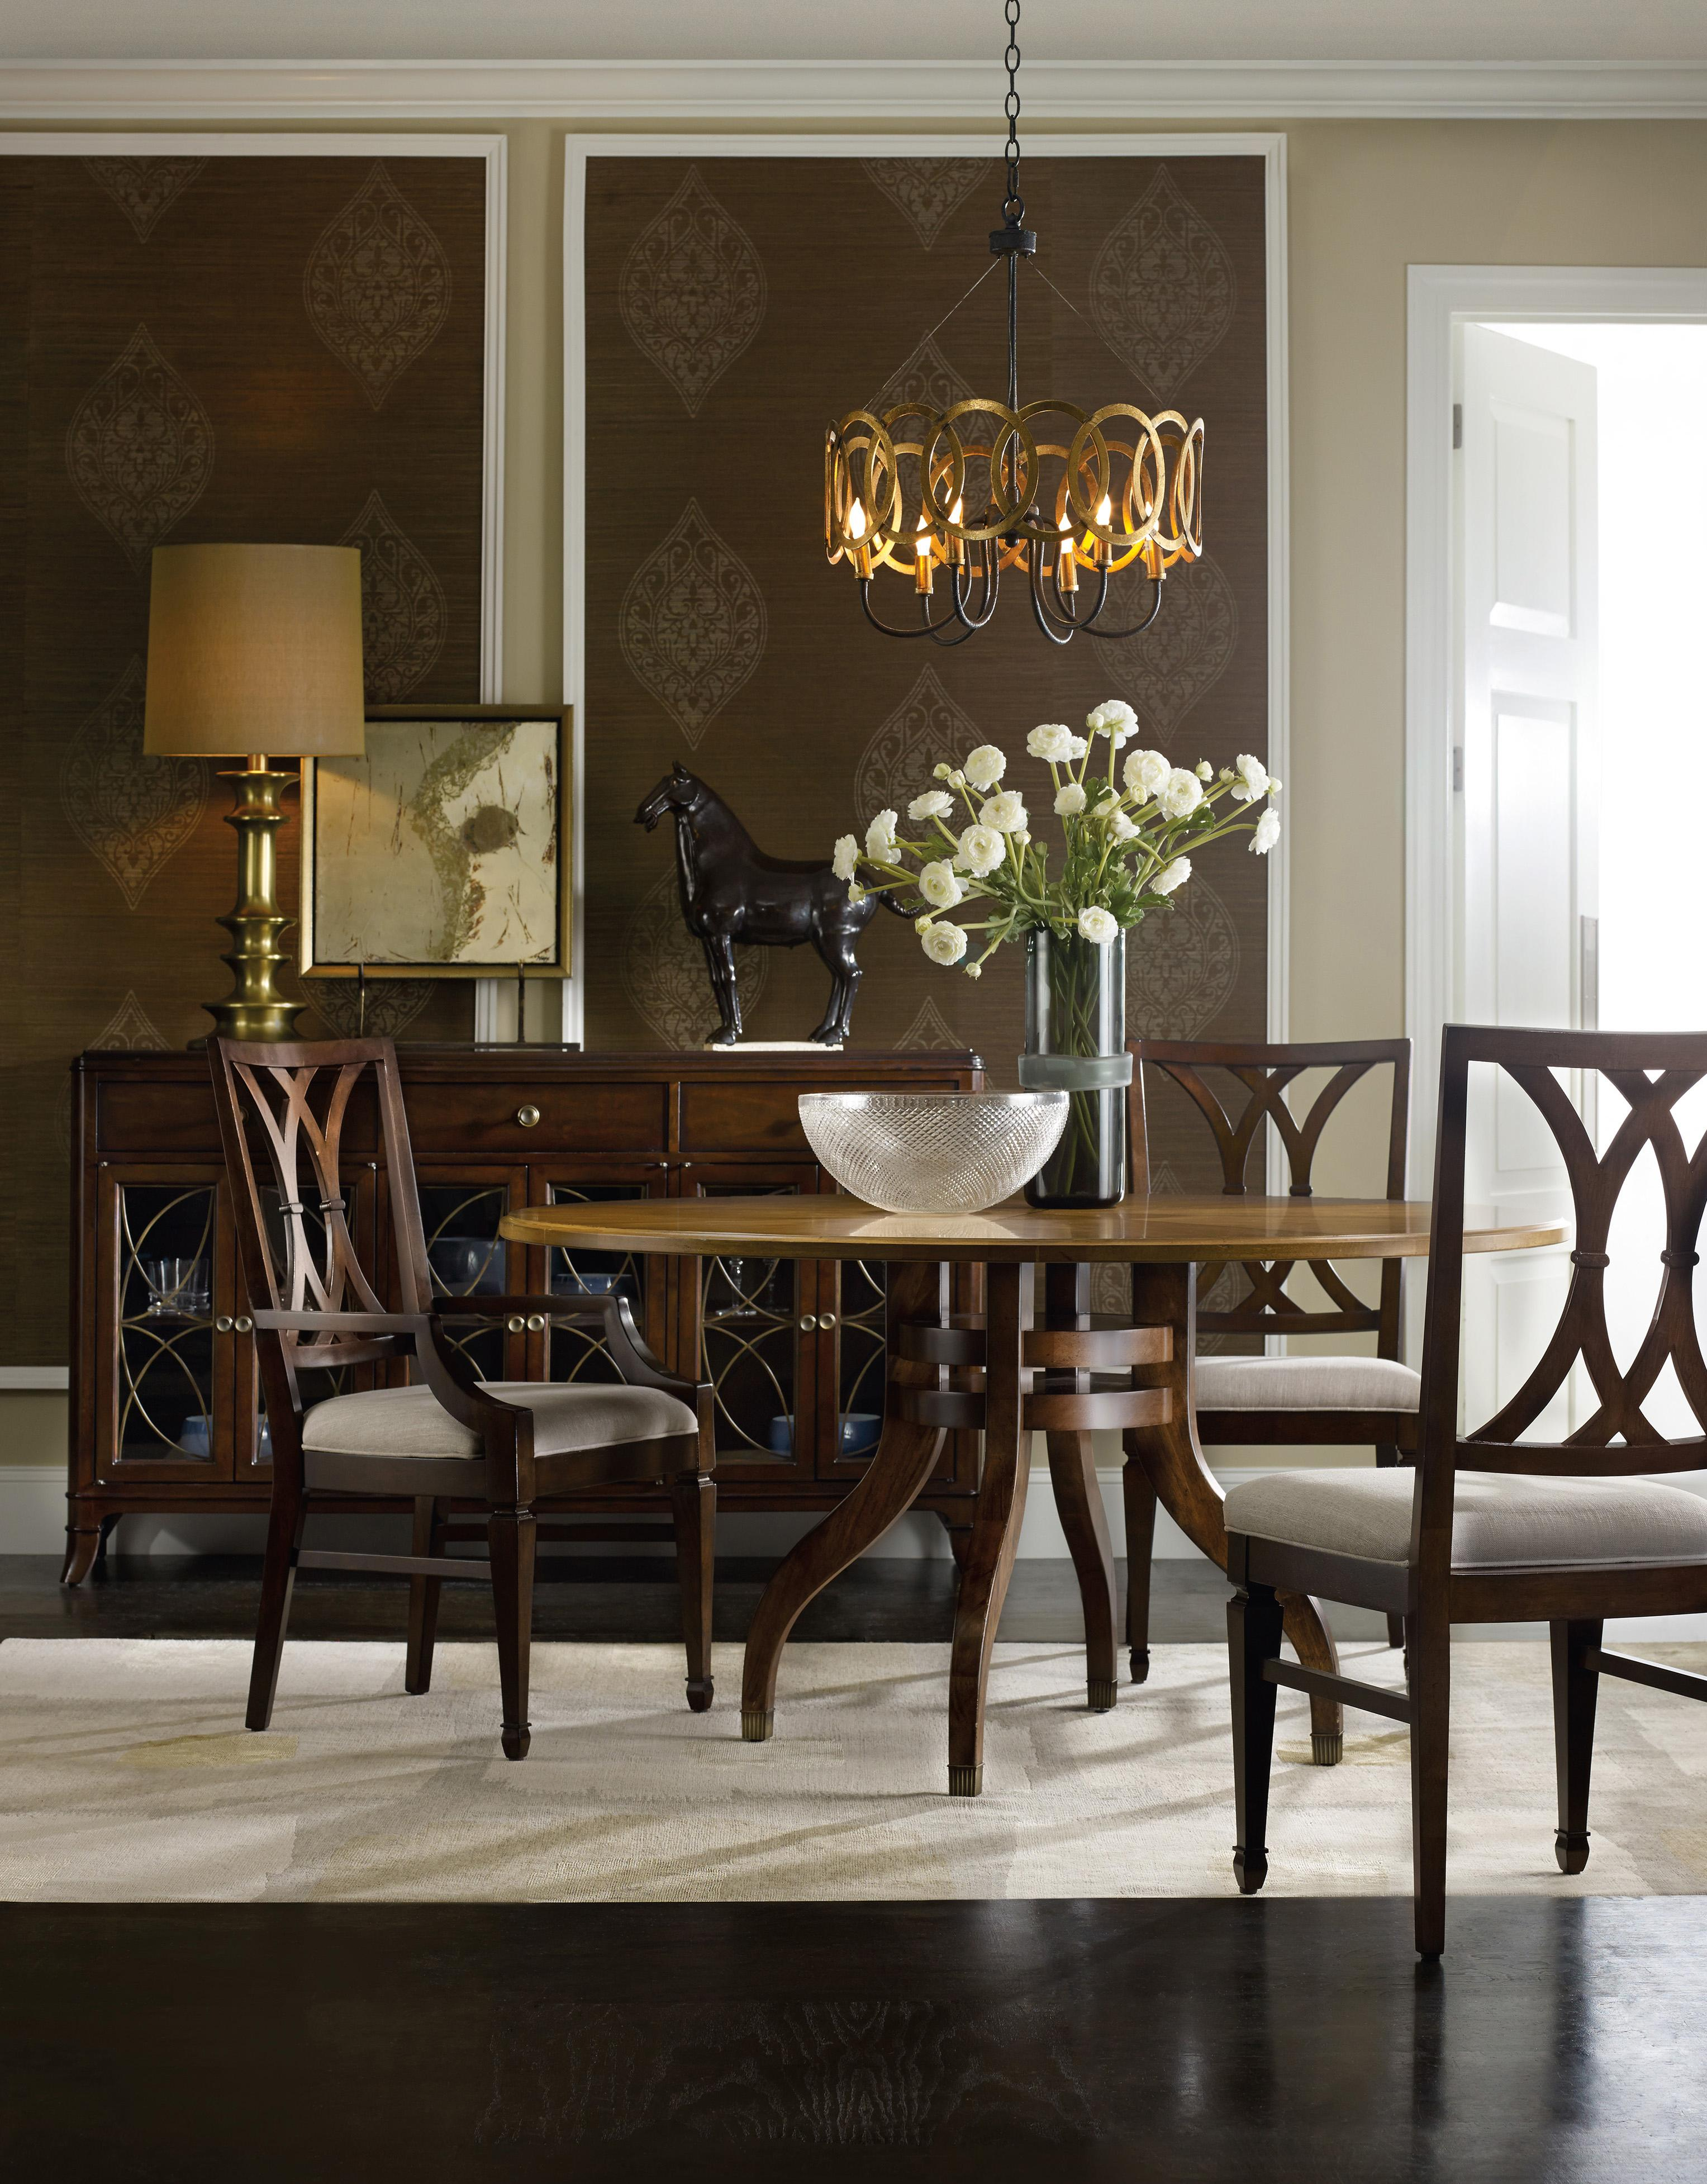 Hooker Furniture Palisade Formal Dining Room Group - Item Number: 5183 Dining Room Group 2